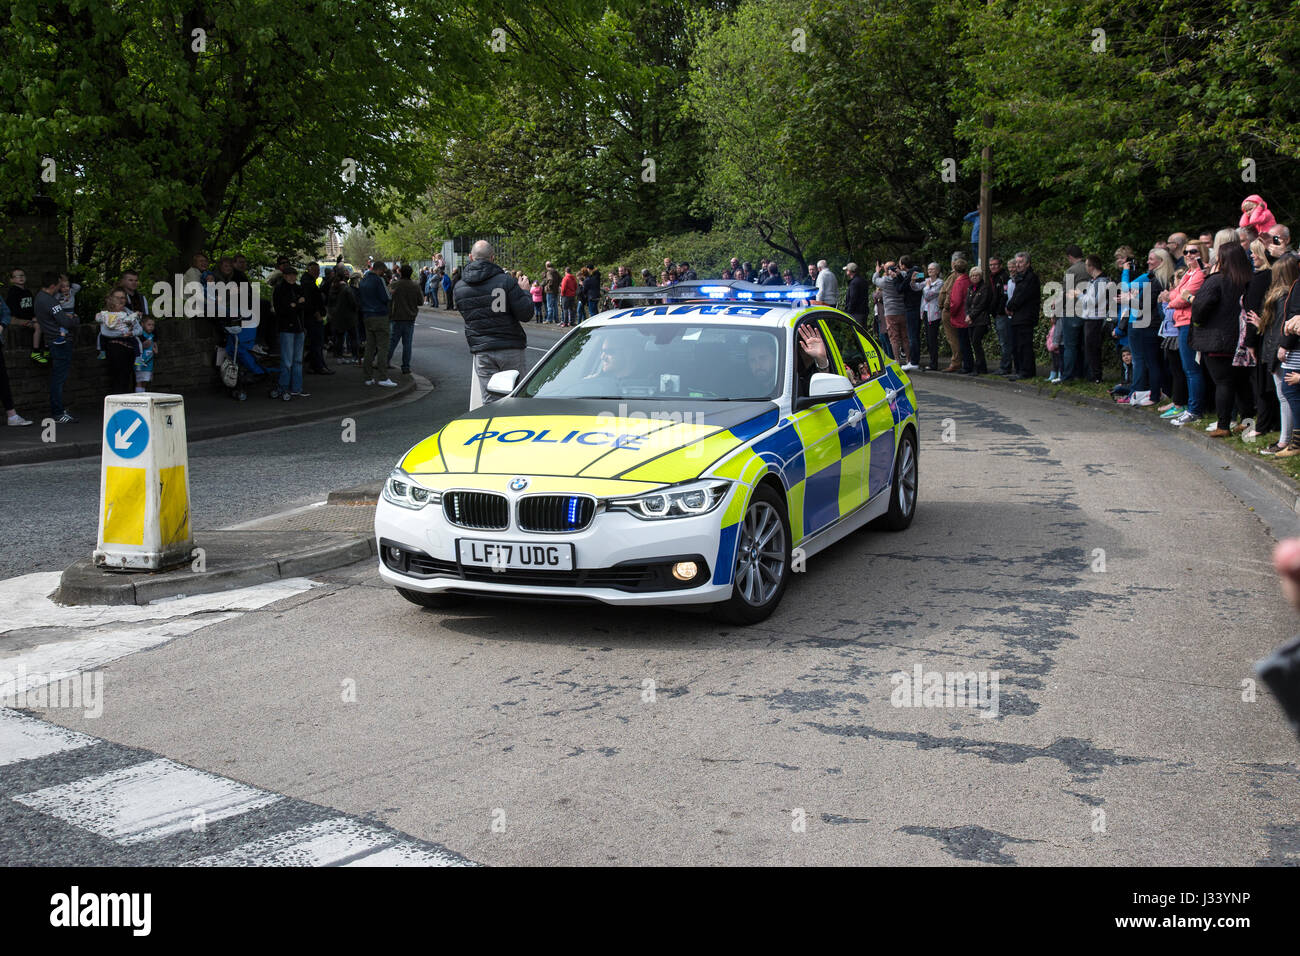 British Police car controlling crowds at public event - Stock Image